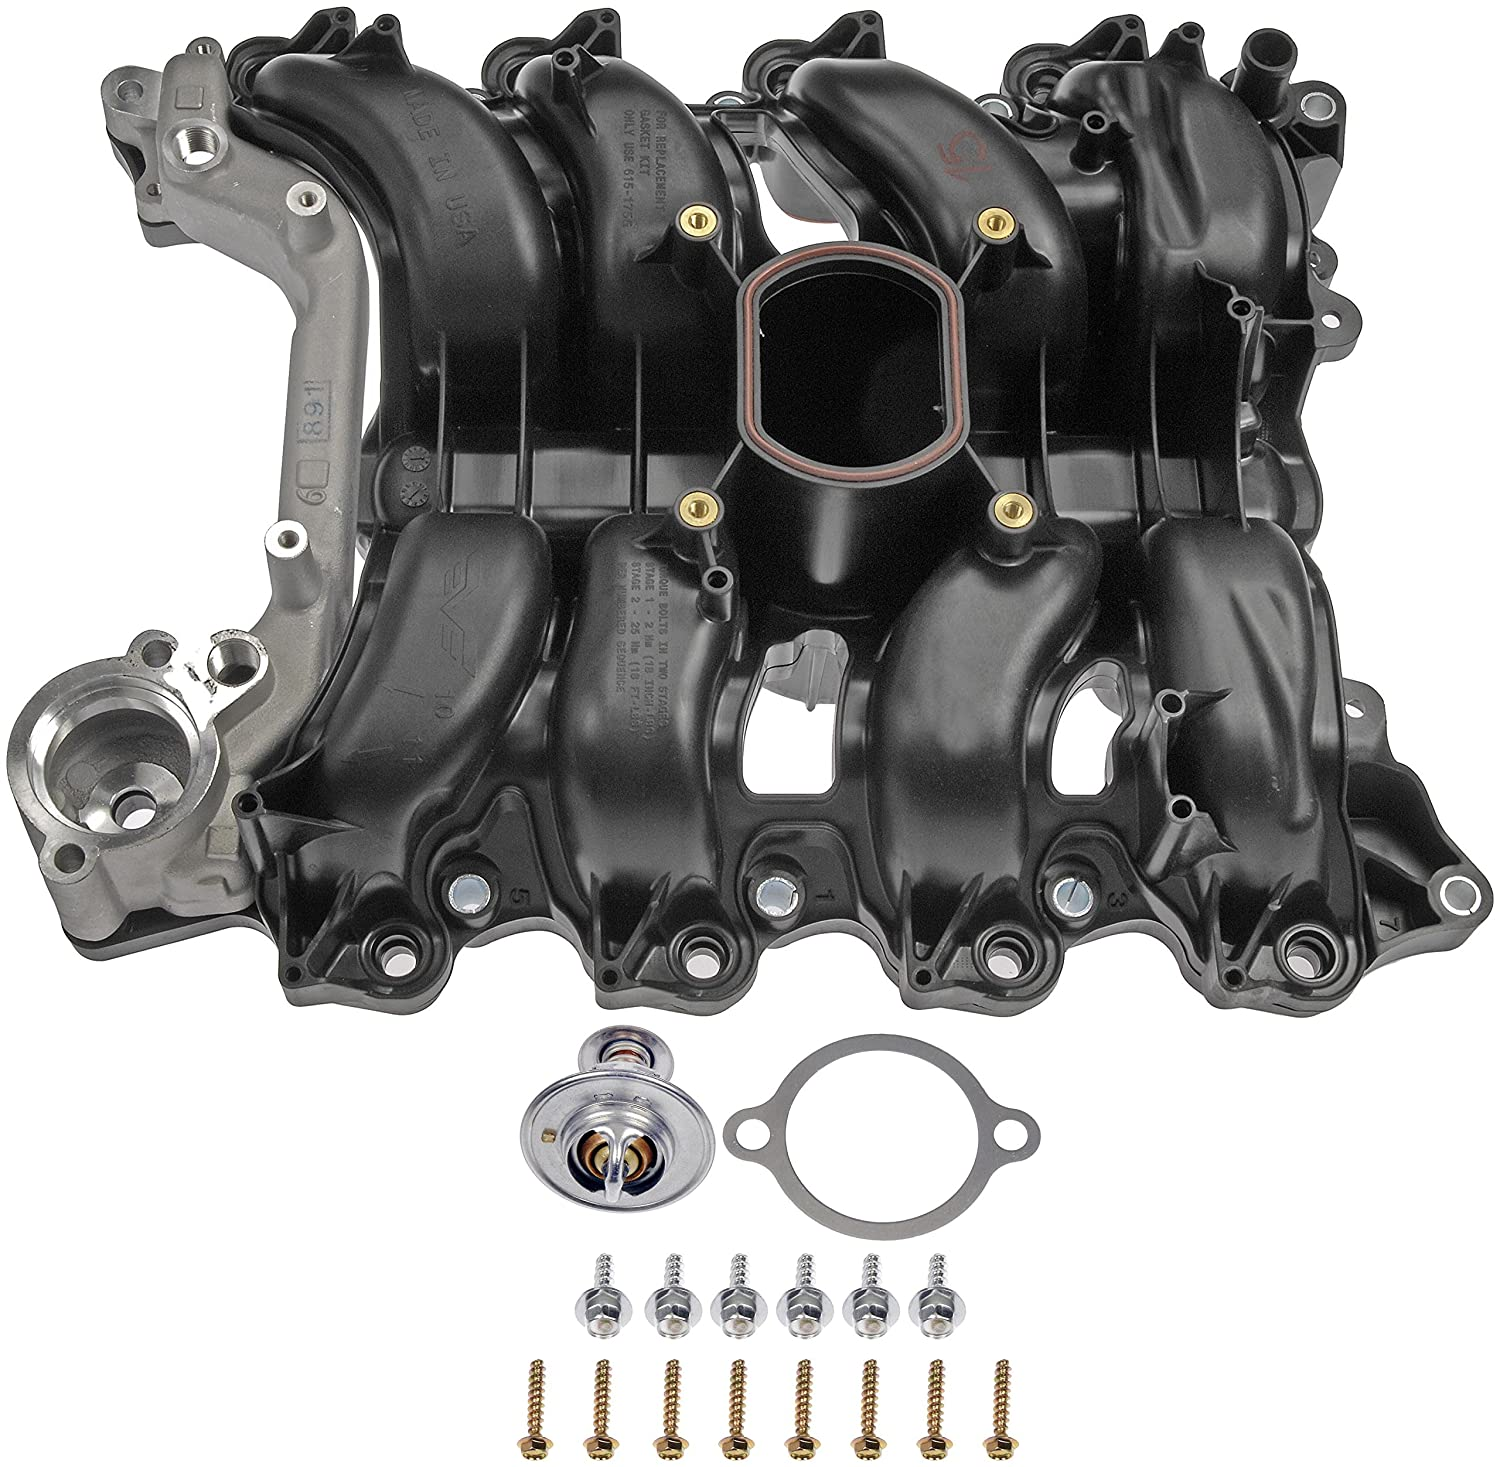 Dorman 615 178 Upper Intake Manifold For Select Ford Lincoln Town Car Engine Diagram Image Details Mercury Models Automotive